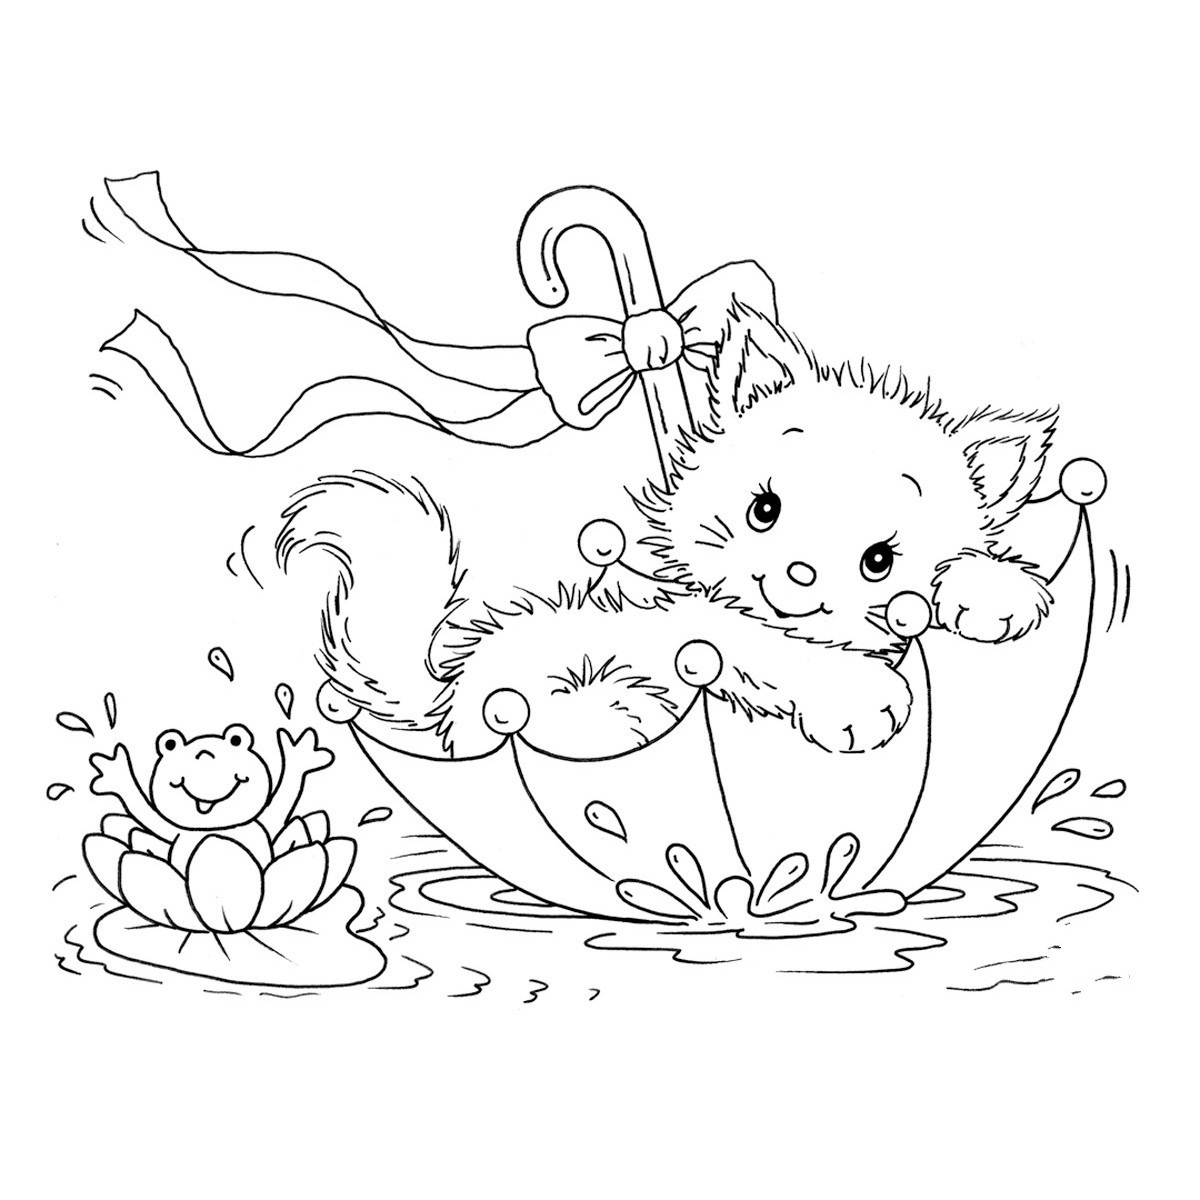 Free Printable Cat Coloring Pages For Kids, Coloring Pictures Of - Free Printable Cat Coloring Pages